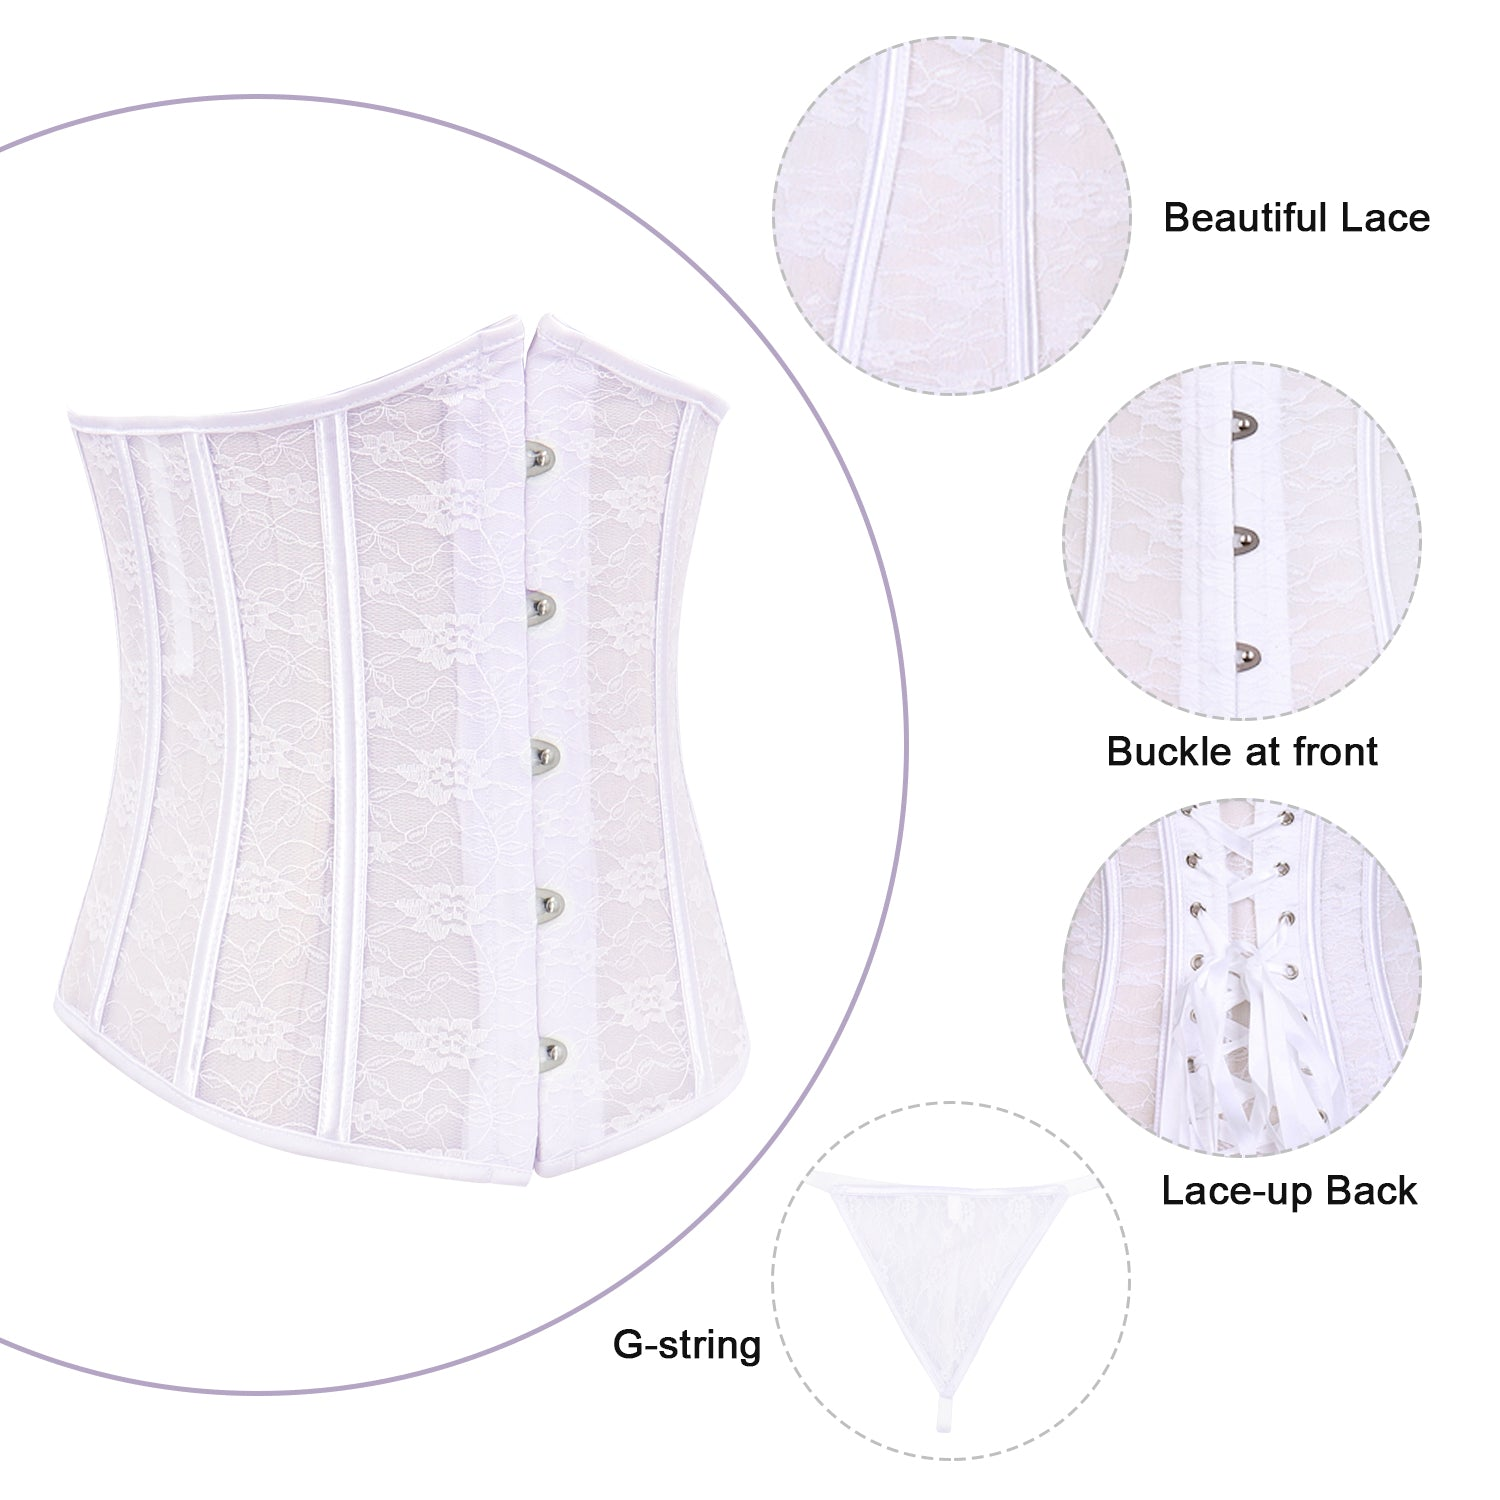 2be591d33c7 Underbust Corset Belt Brocade Lingerie Tops White – Bargoos Fashion